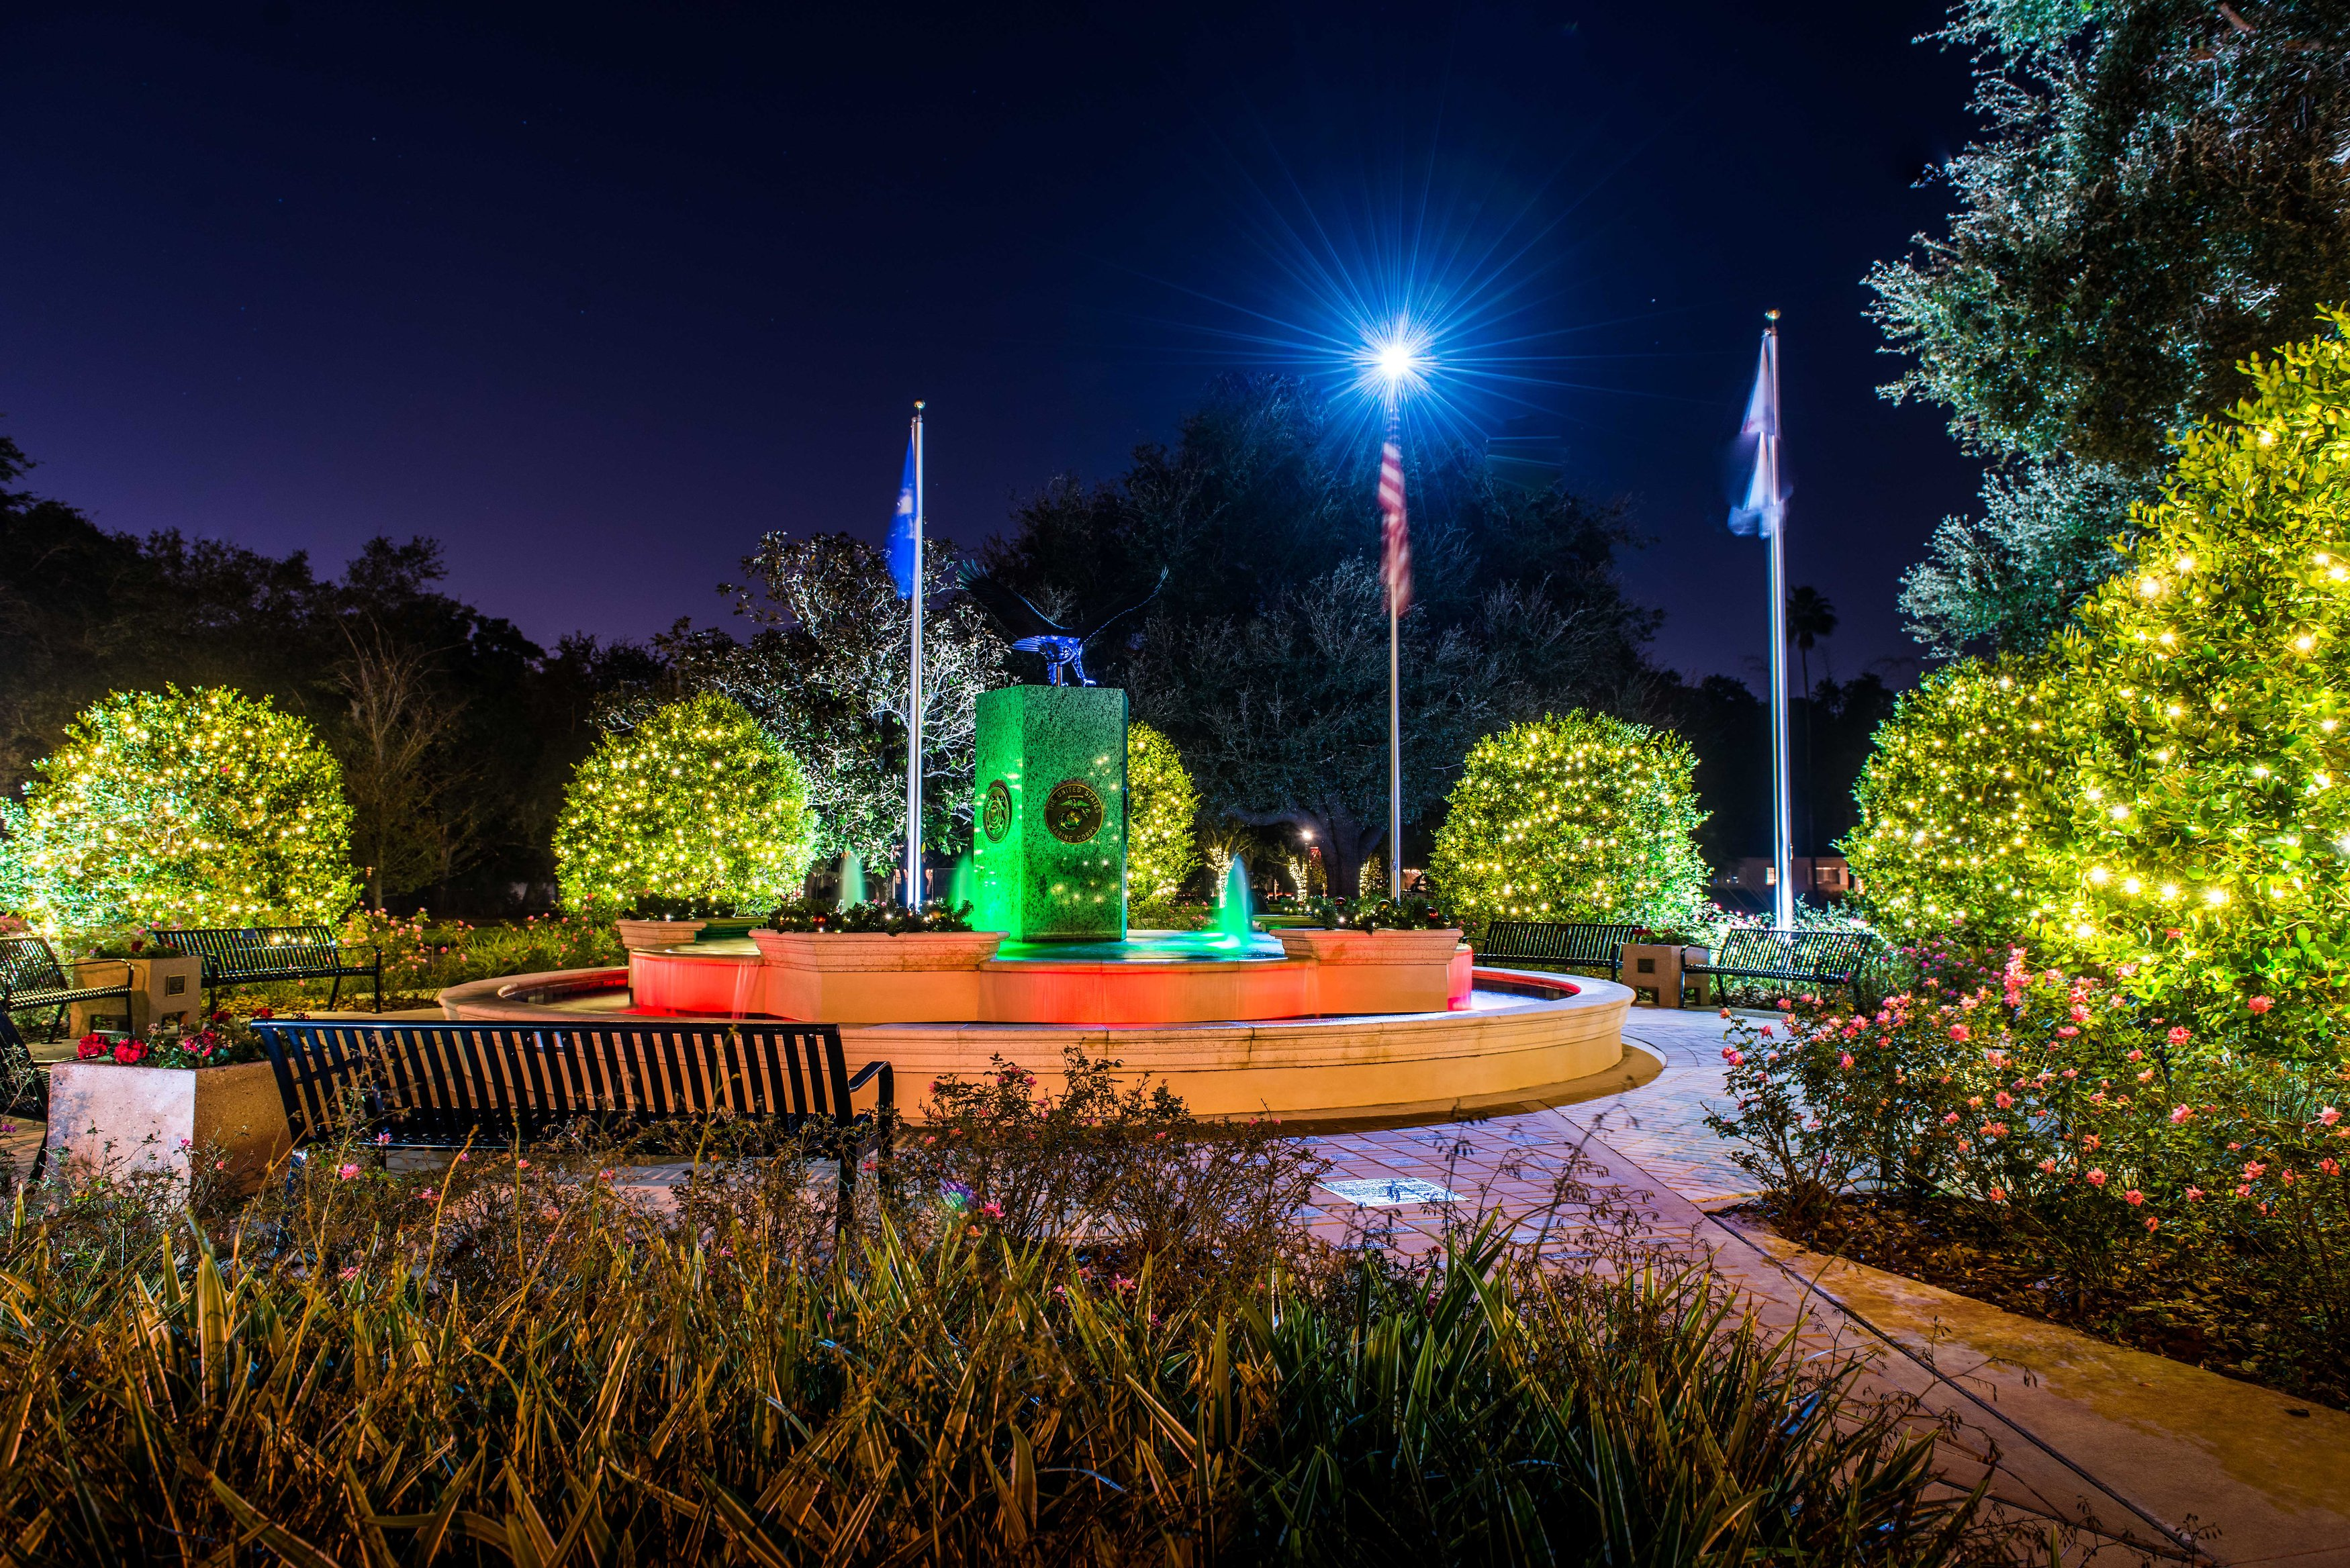 A view of Hunter Memorial Park's fountain, benches, and pavers, lit for the holiday season